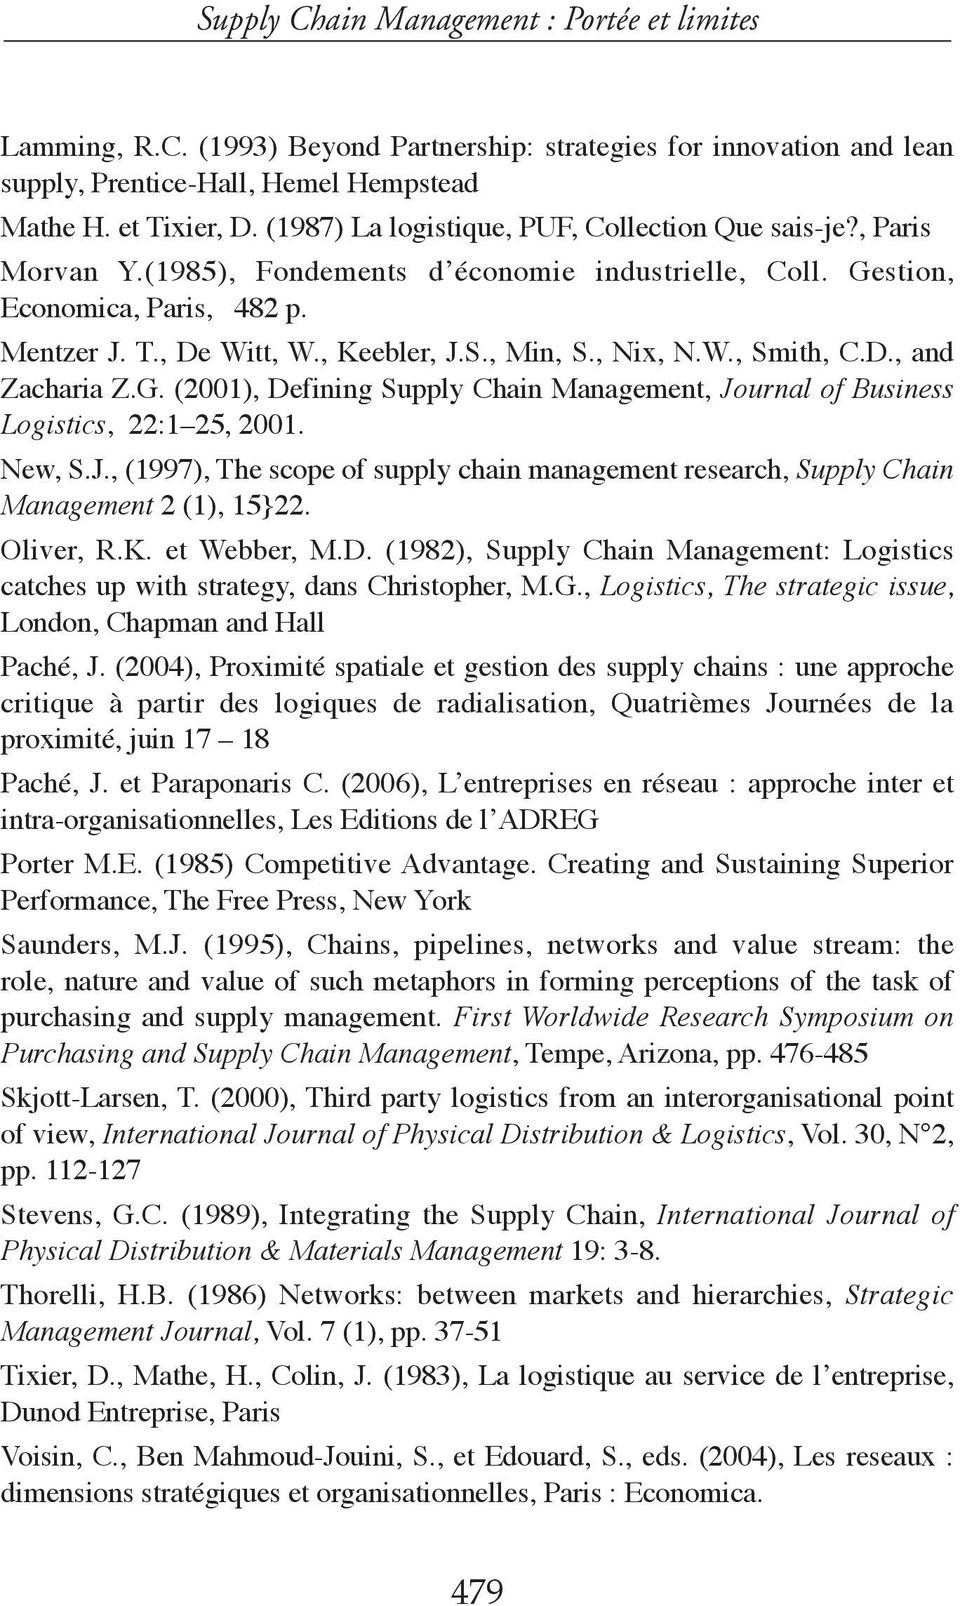 , Min, S., Nix, N.W., Smith, C.D., and Zacharia Z.G. (2001), Defining Supply Chain Management, Journal of Business Logistics, 22:1 25, 2001. New, S.J., (1997), The scope of supply chain management research, Supply Chain Management 2 (1), 15}22.